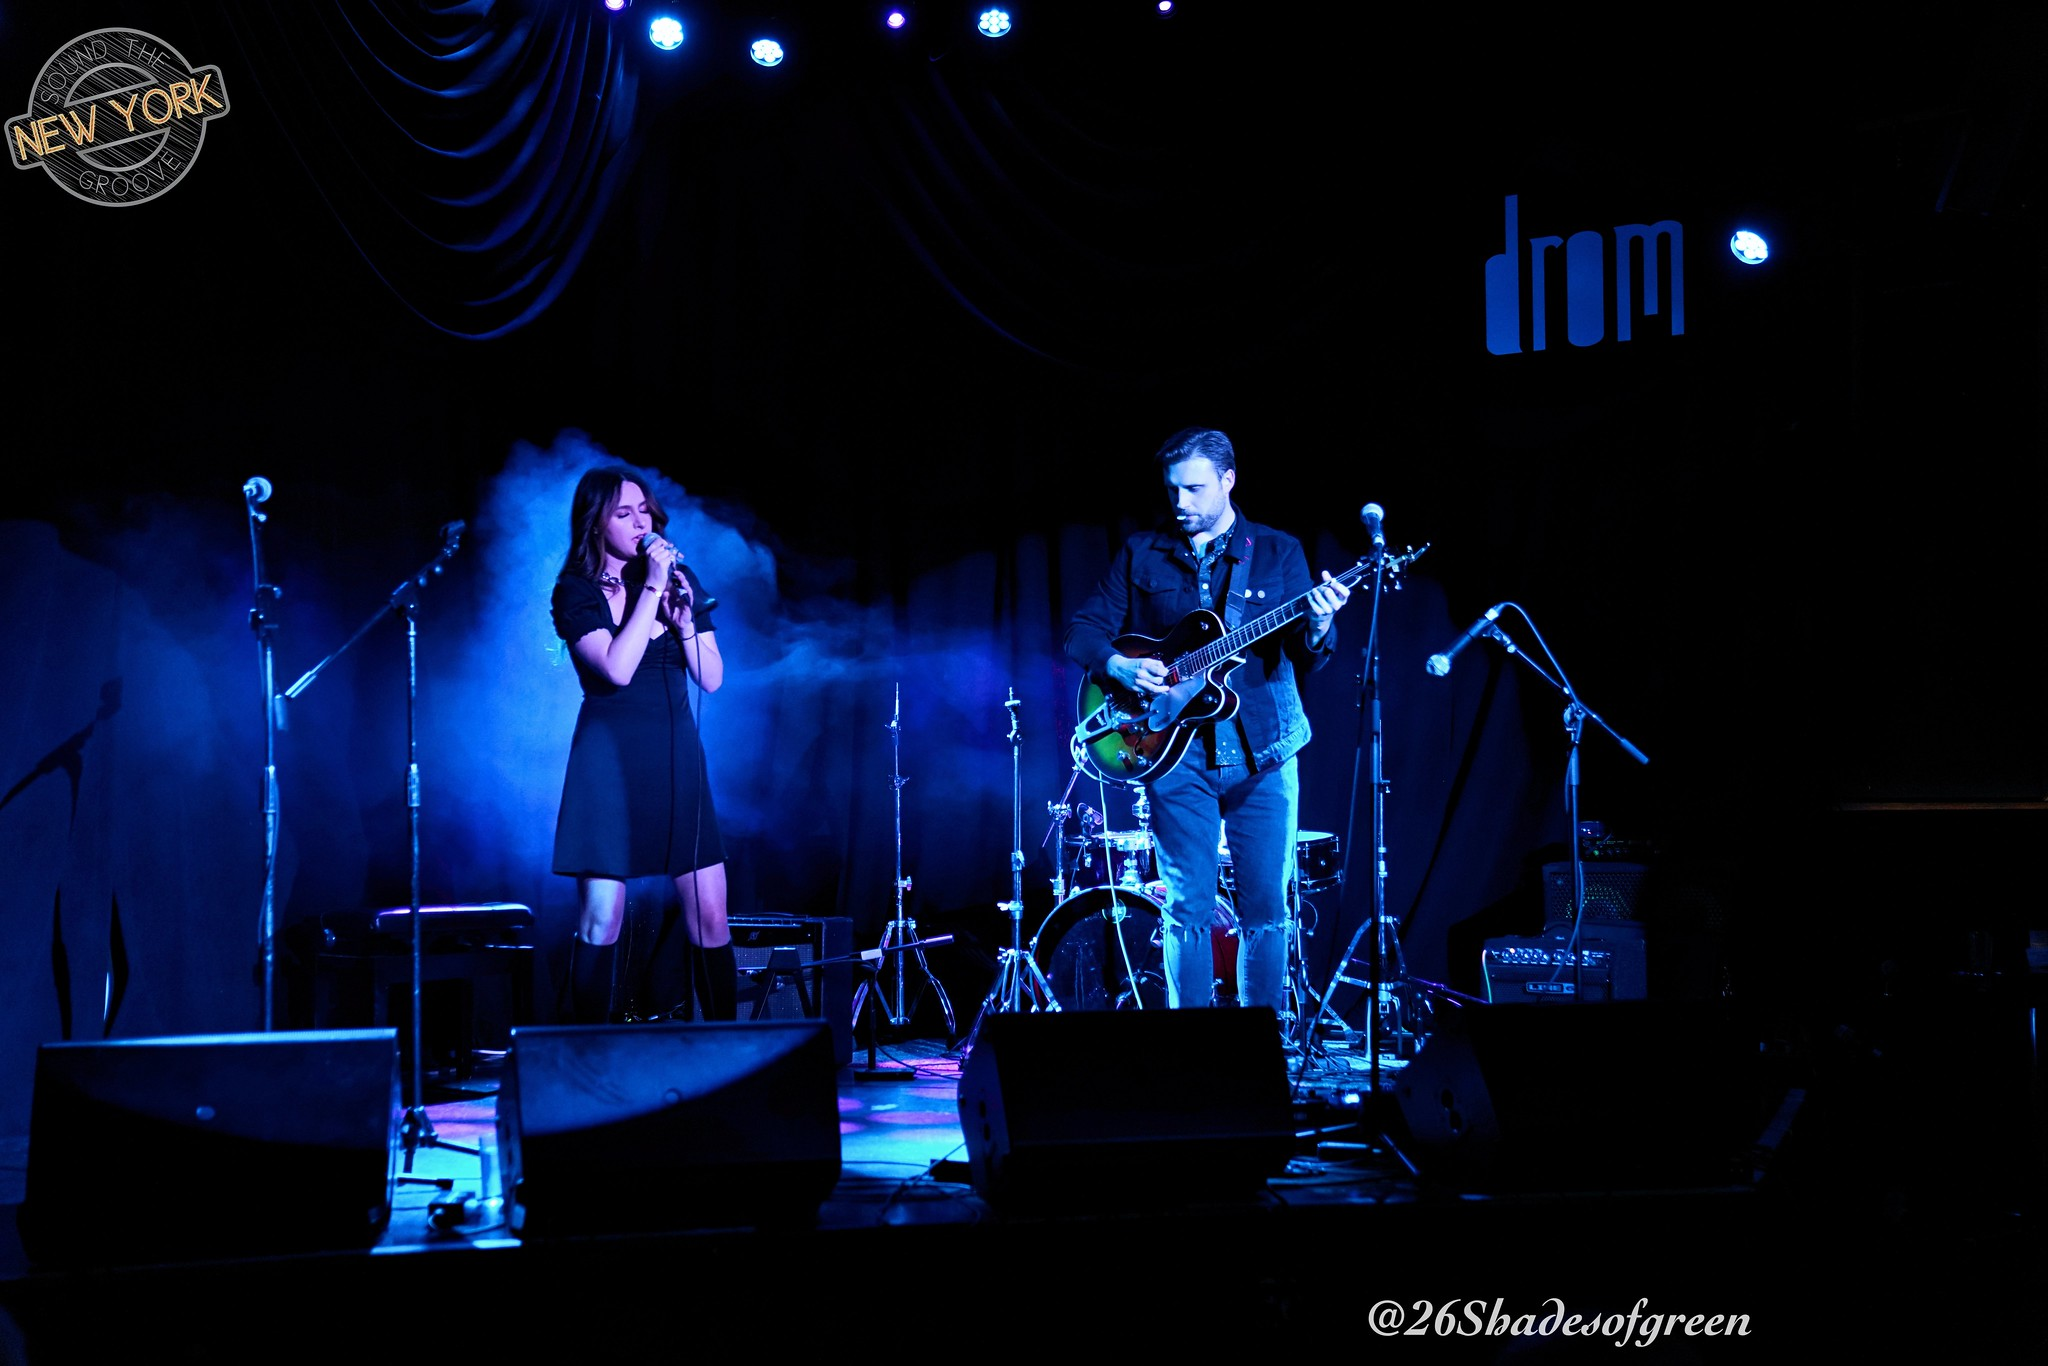 Veronica Frey with Eric Drylewicz @ DROM NYC; 02.26.20